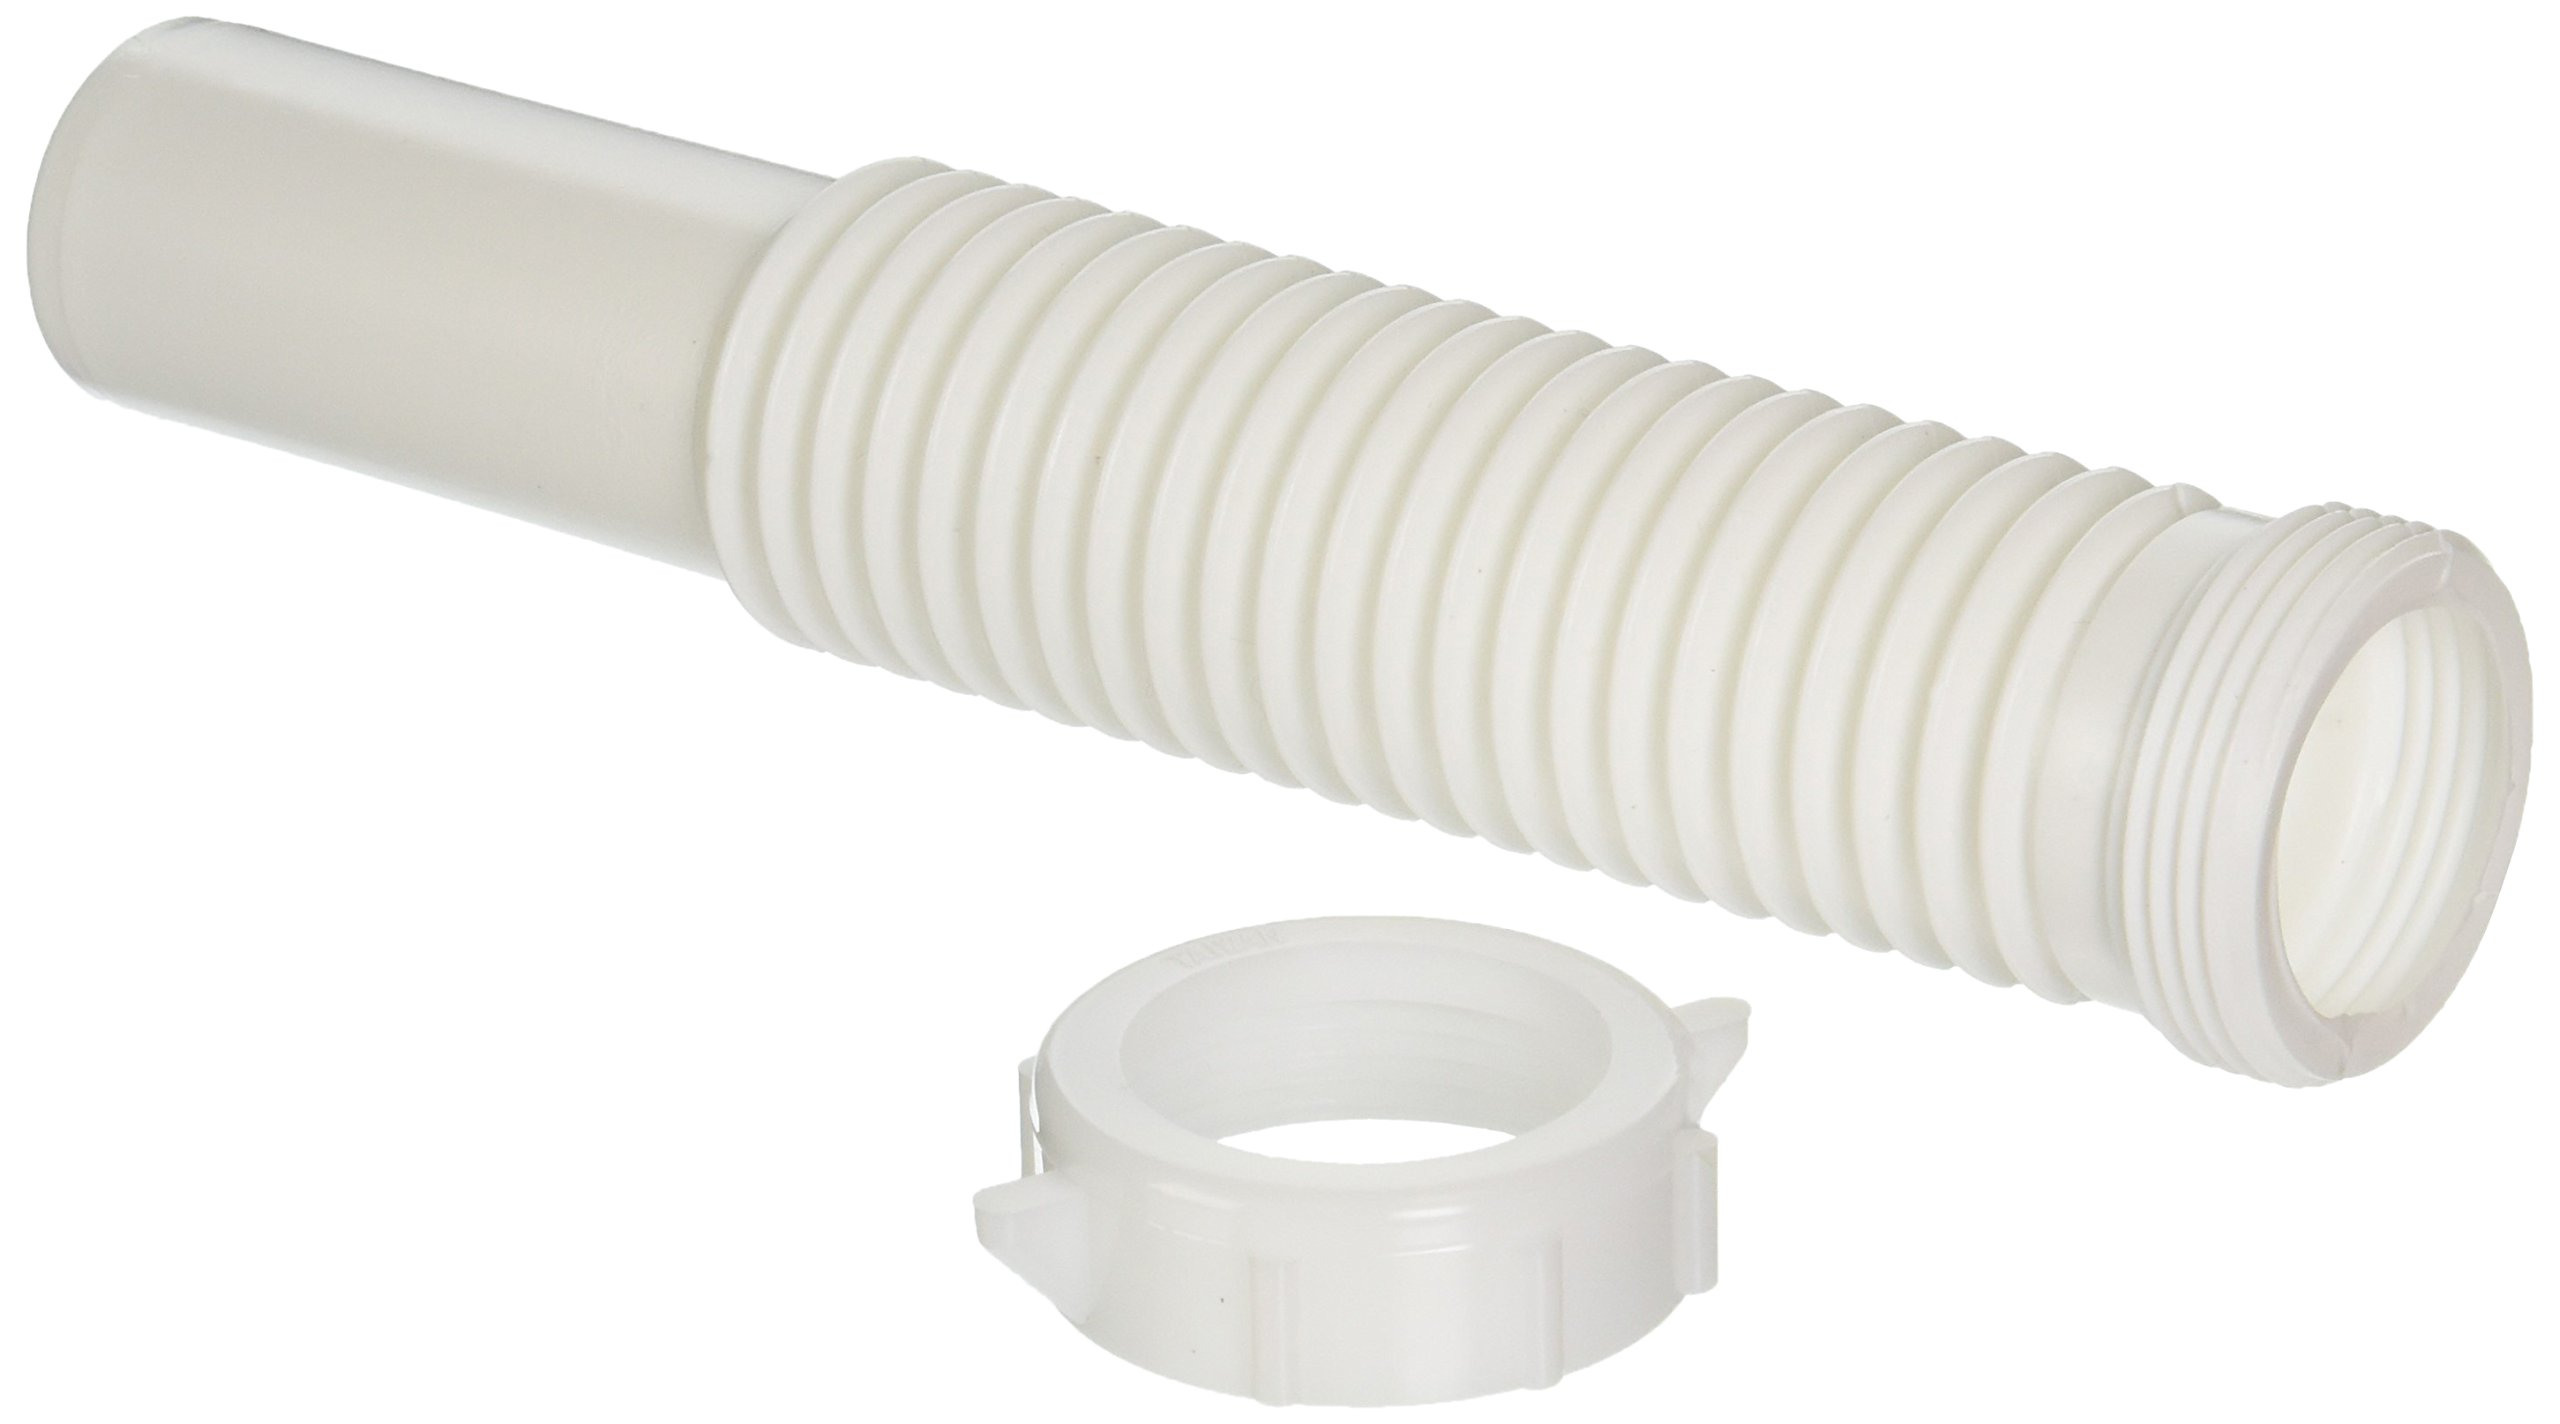 Danco 51070 Universal Flexible Tailpiece Extension, 1-1/4 In, Slip Joint, Plastic, 9 In L 1/1/4'' x 9'' White